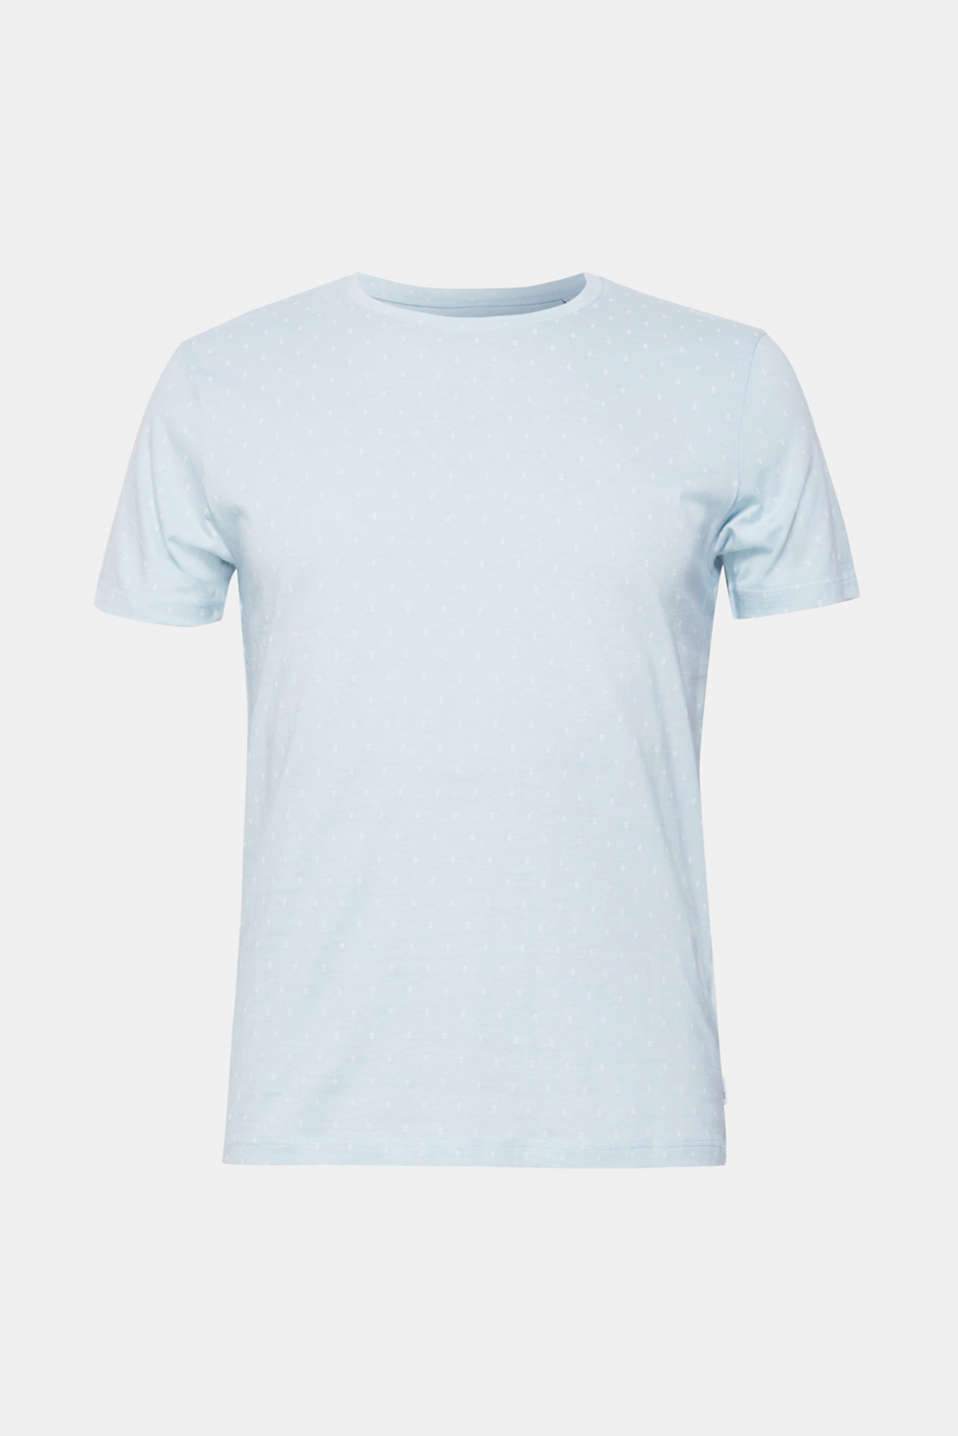 Jersey top with an all-over print, 100% cotton, LIGHT BLUE, detail image number 6